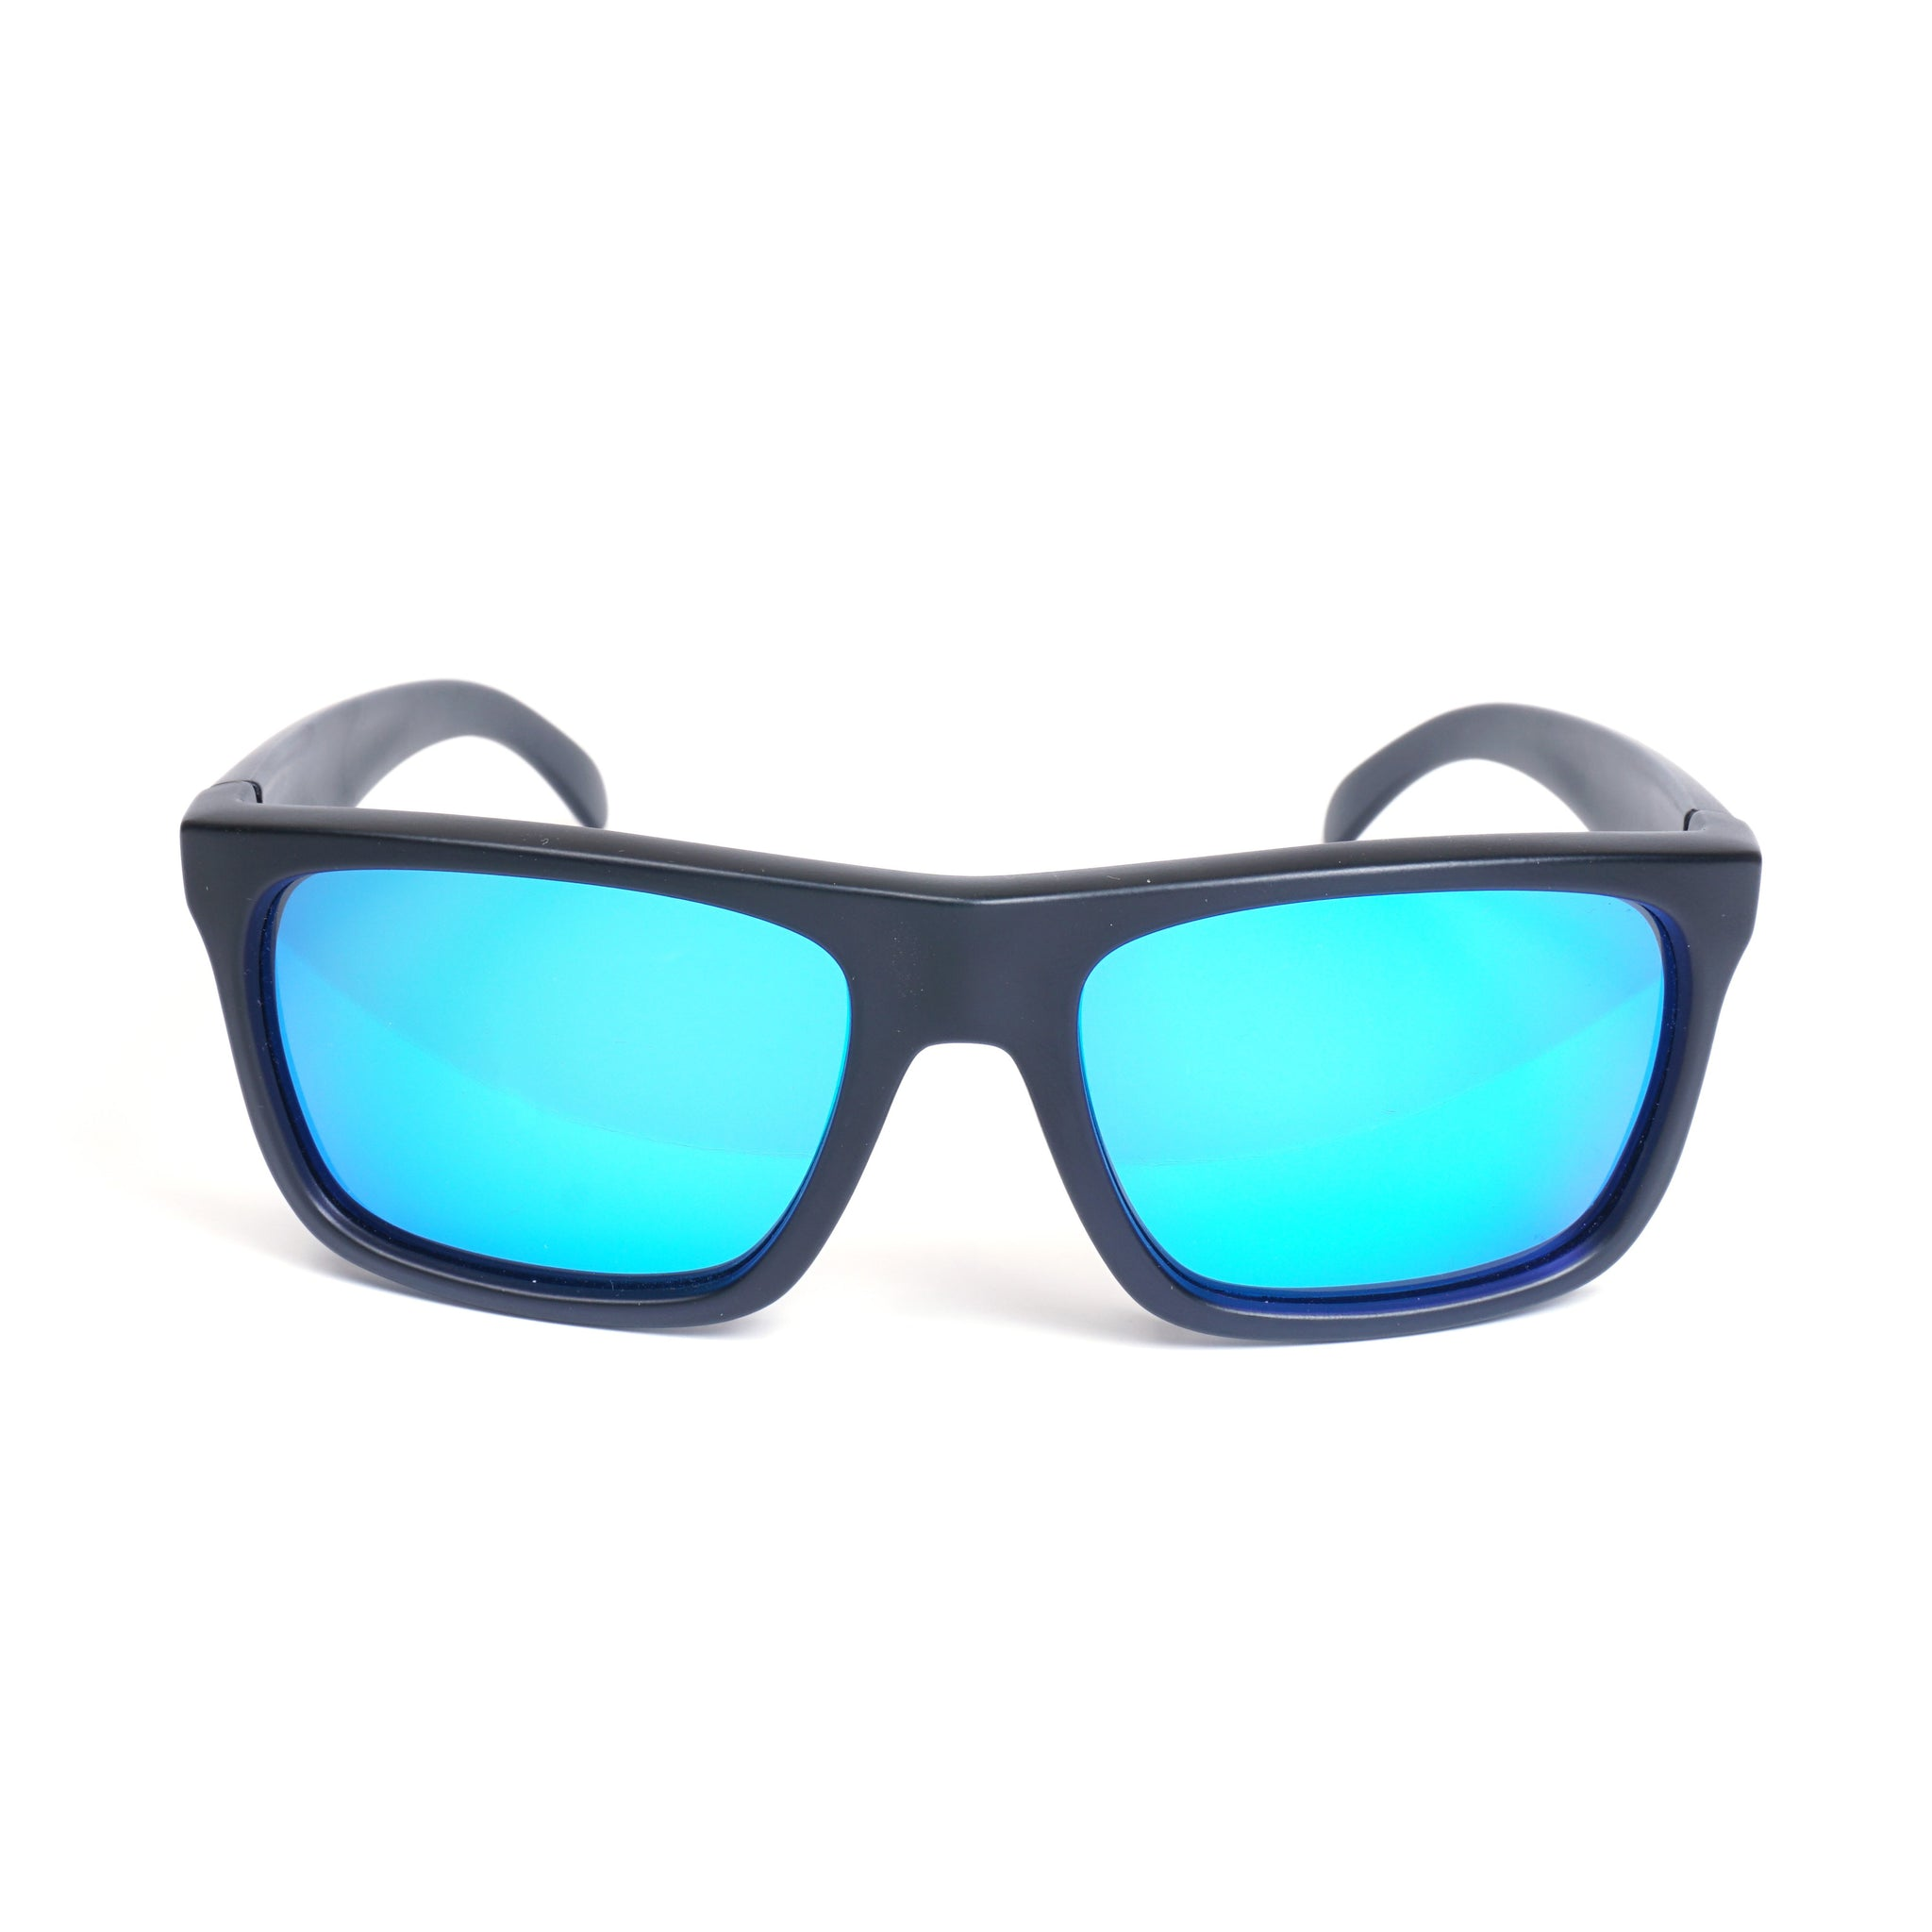 STAGE Cast Floating Sunglasses